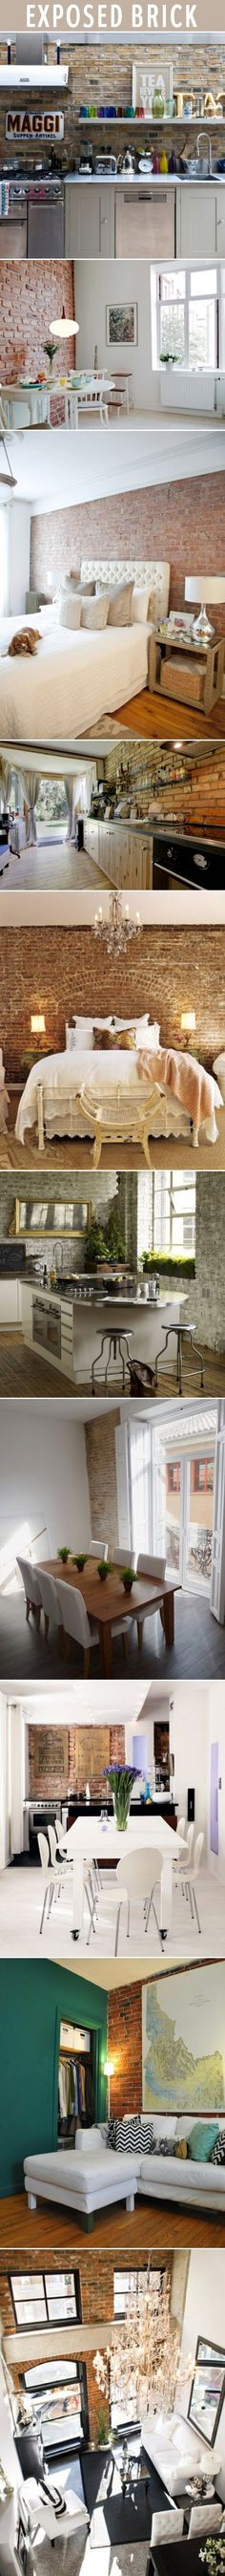 Exposed brick interior @ Home Design Pins